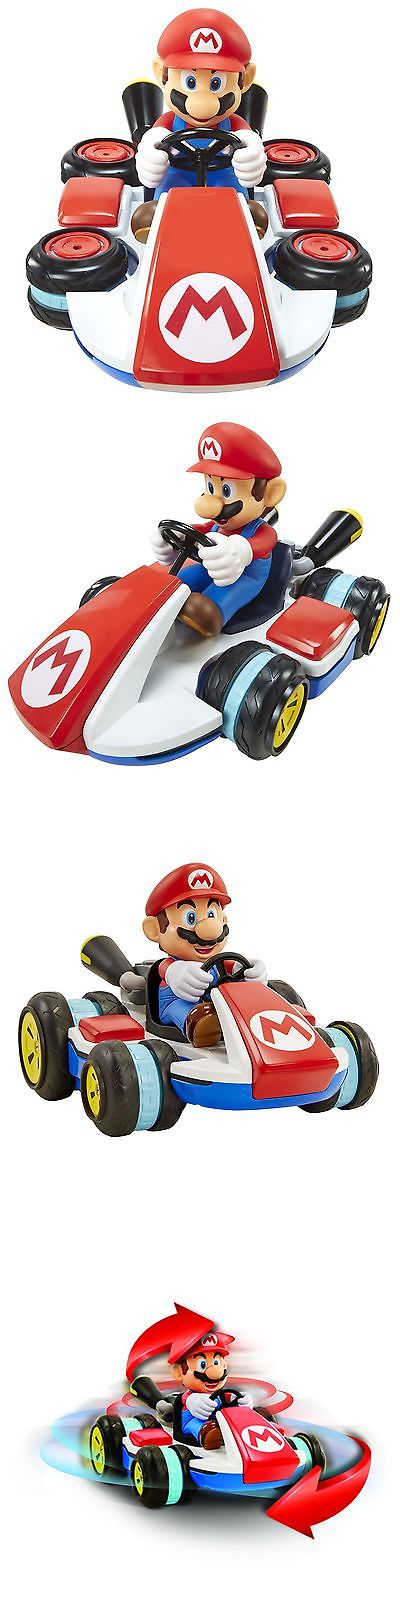 Toy Vehicles 145946: Mario Remote Control Car Mini Rc Racer Vehicle ...